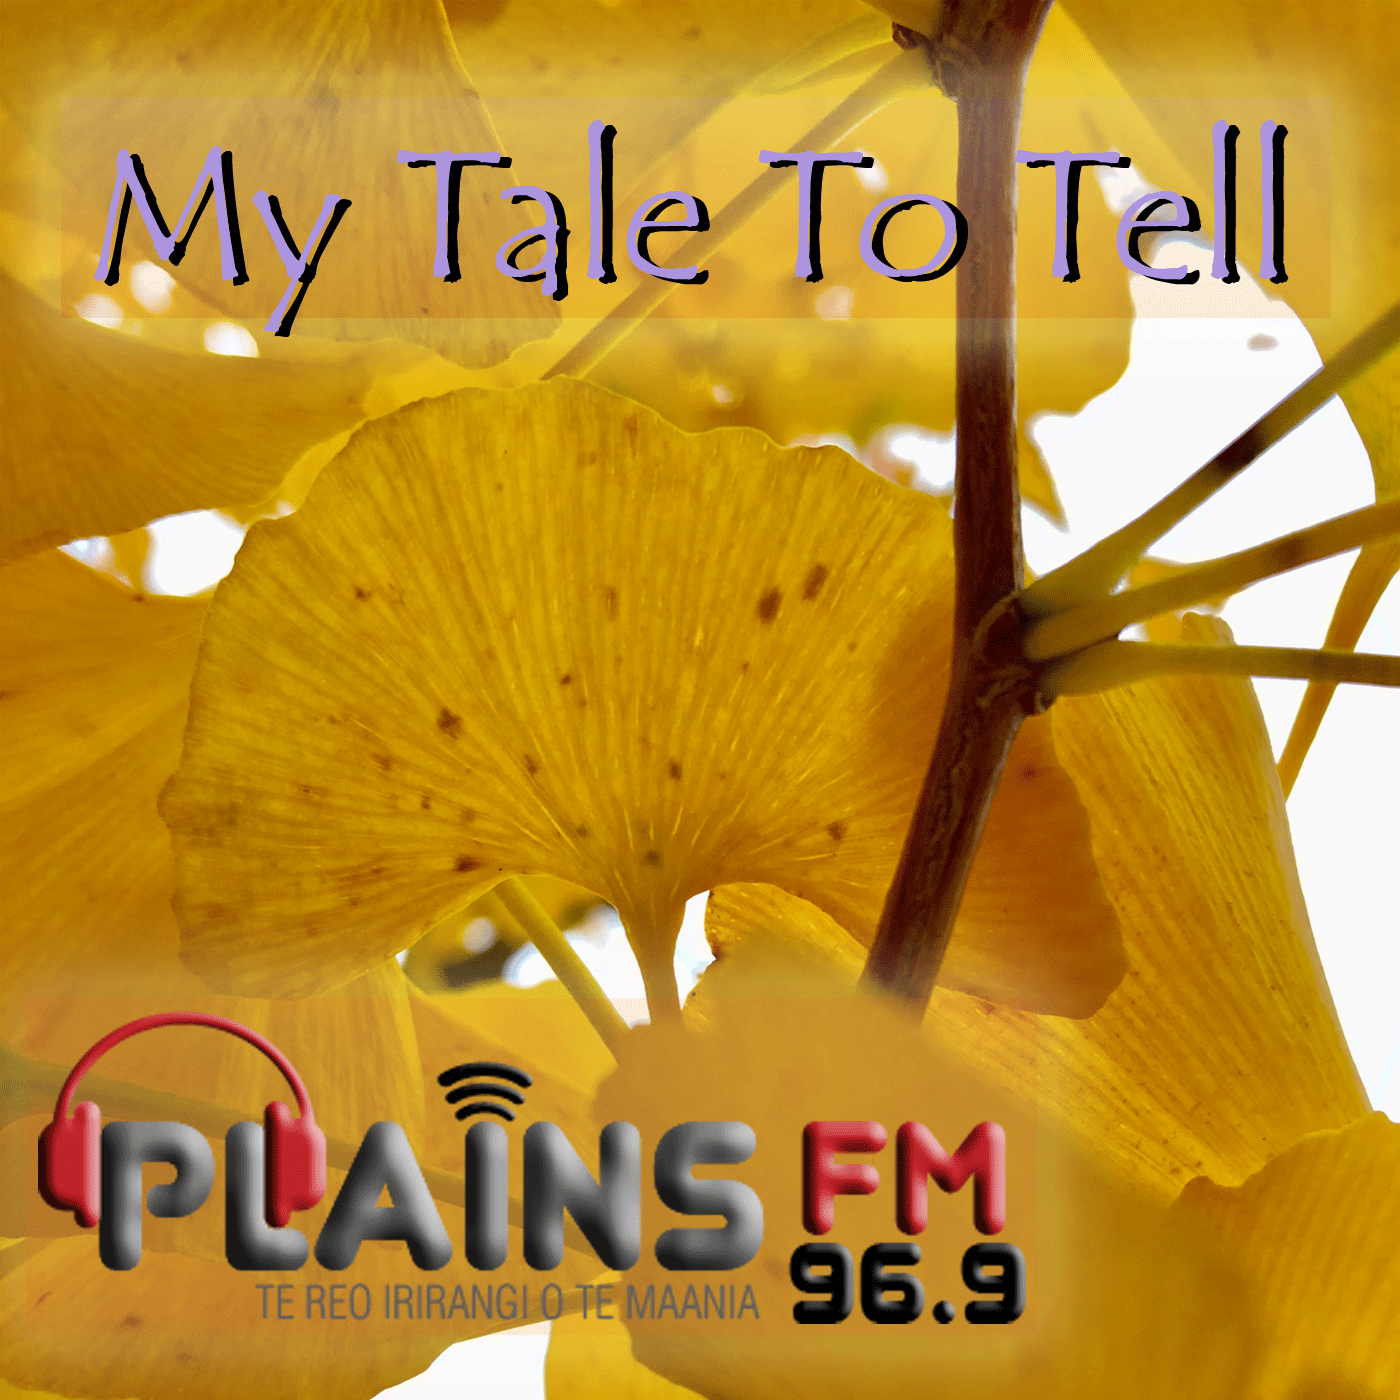 https://cdn.accessradio.org/StationFolder/plainsfm/Images/My-Tale-To-Tell.png